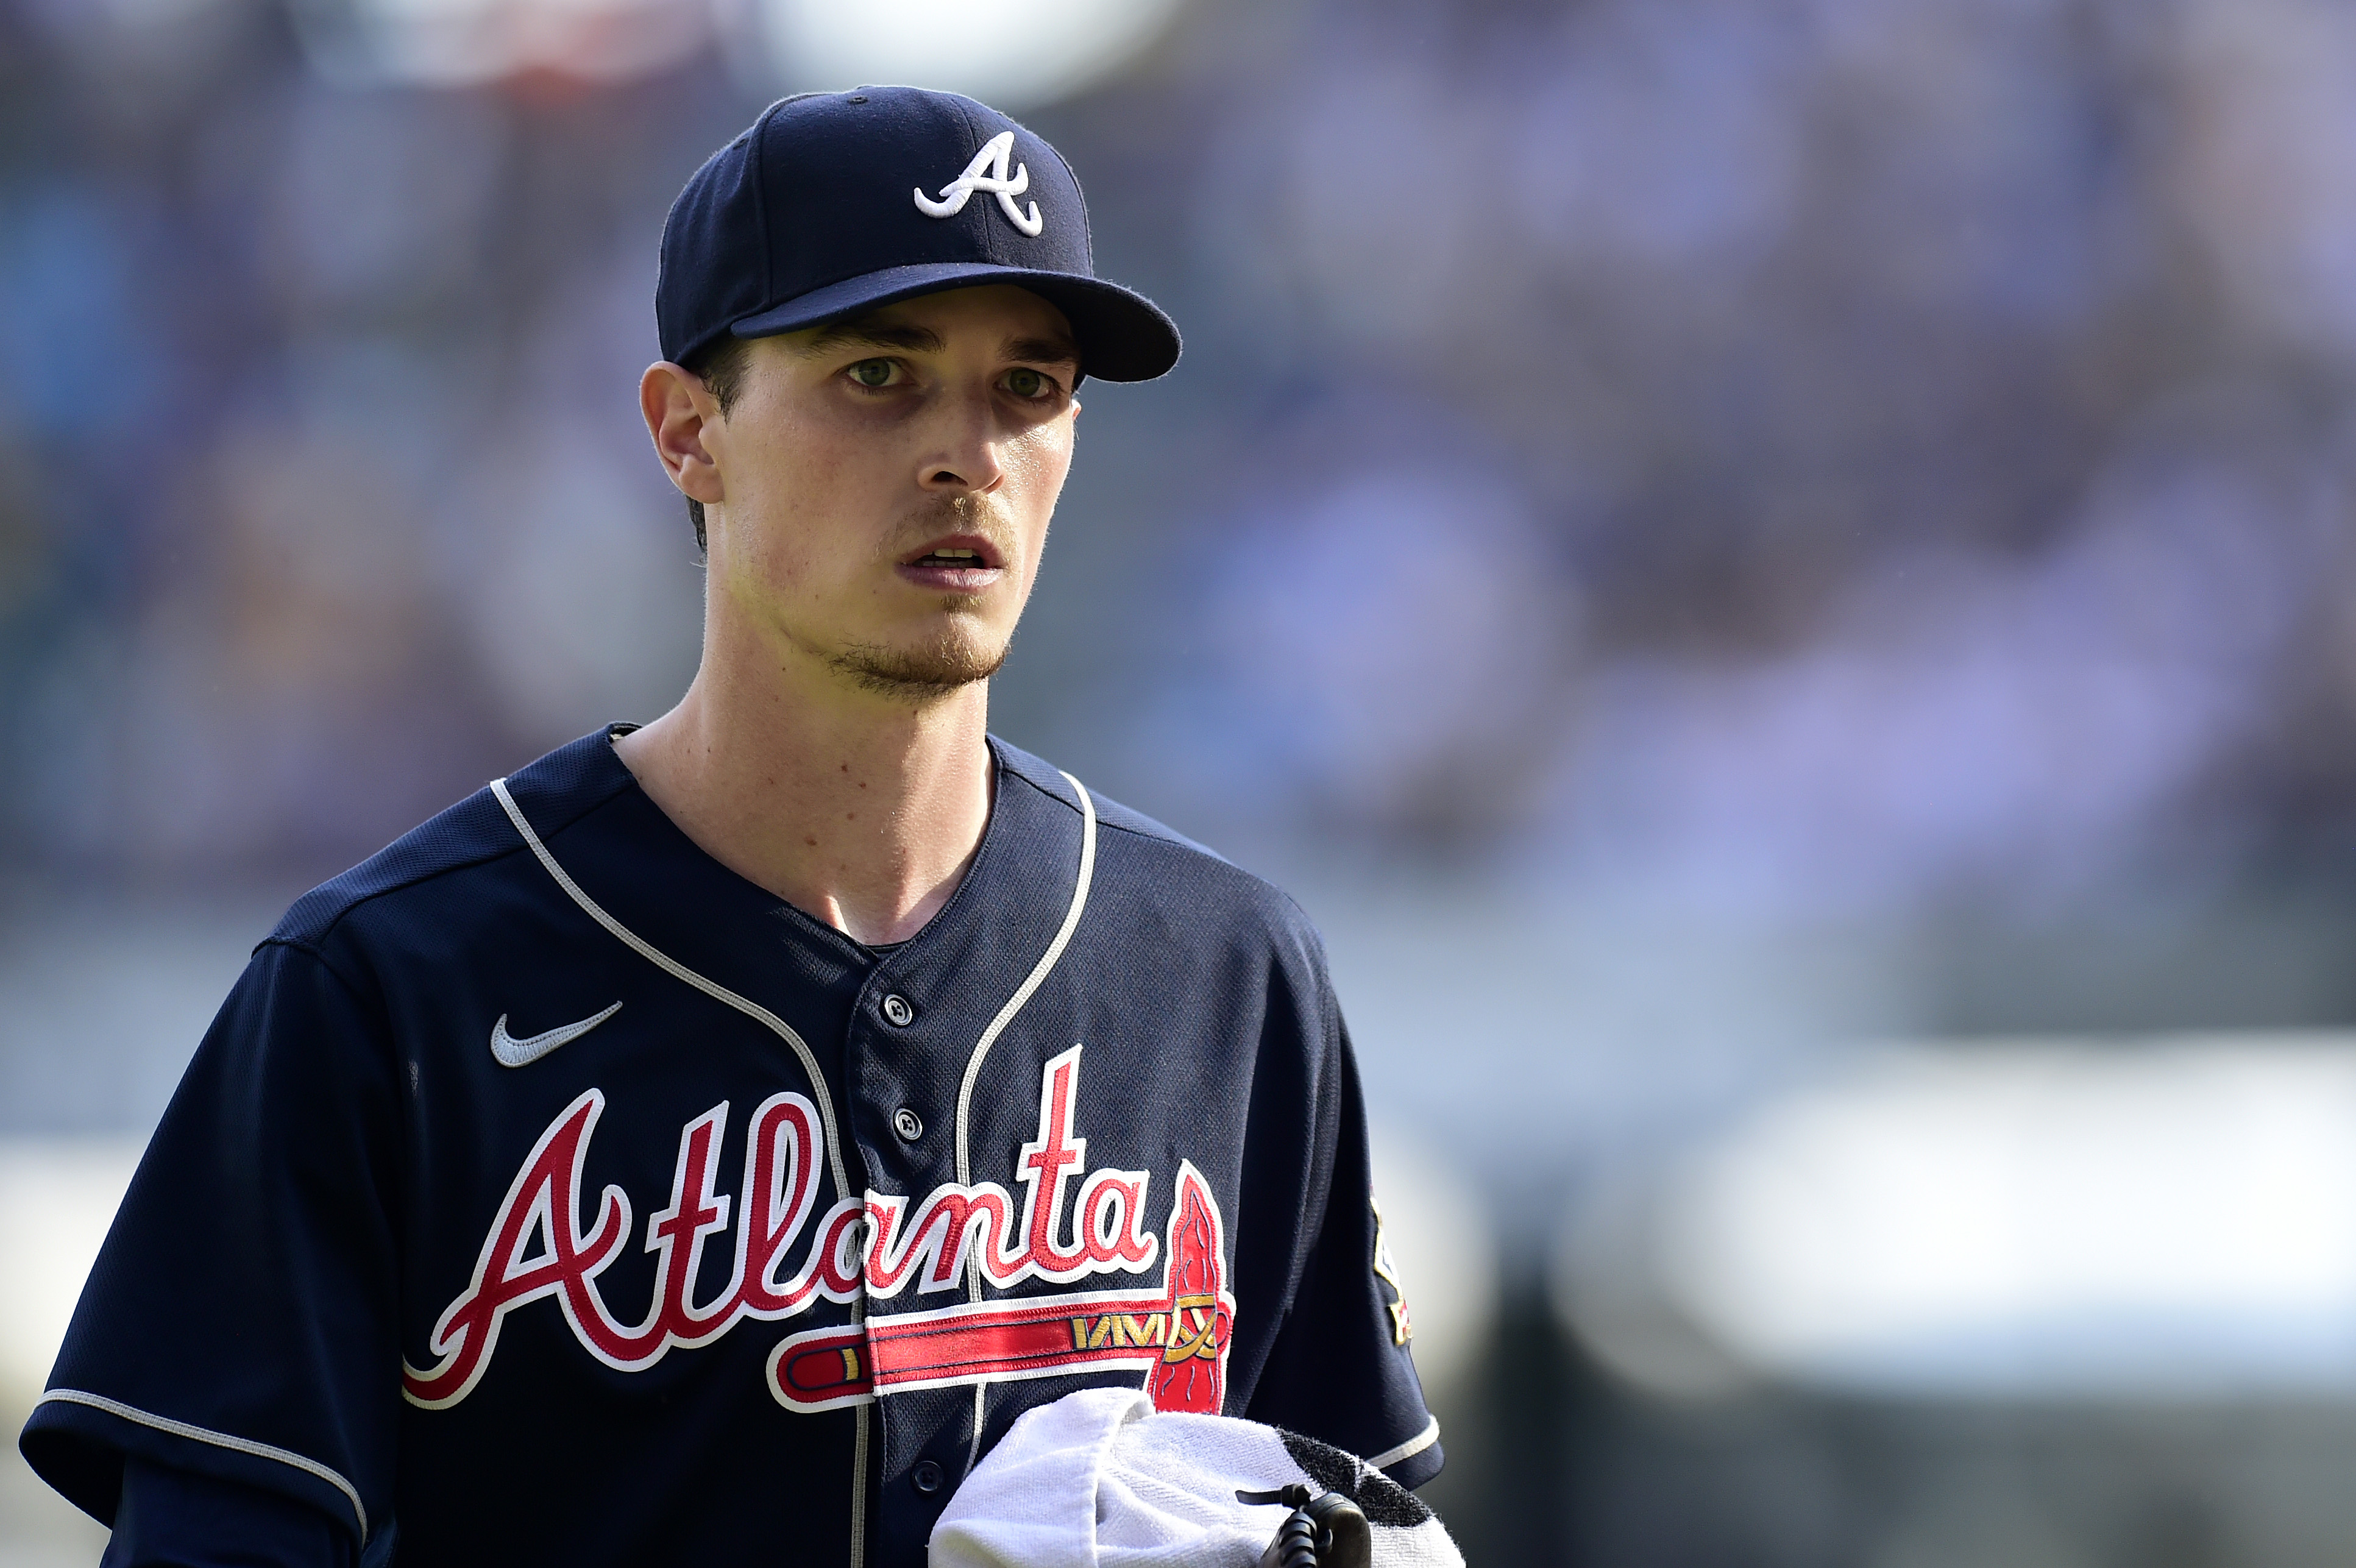 Max Fried #54 of the Atlanta Braves on the field prior to game 2 of the National League Division Series against the Milwaukee Brewers at American Family Field on October 09, 2021 in Milwaukee, Wisconsin.